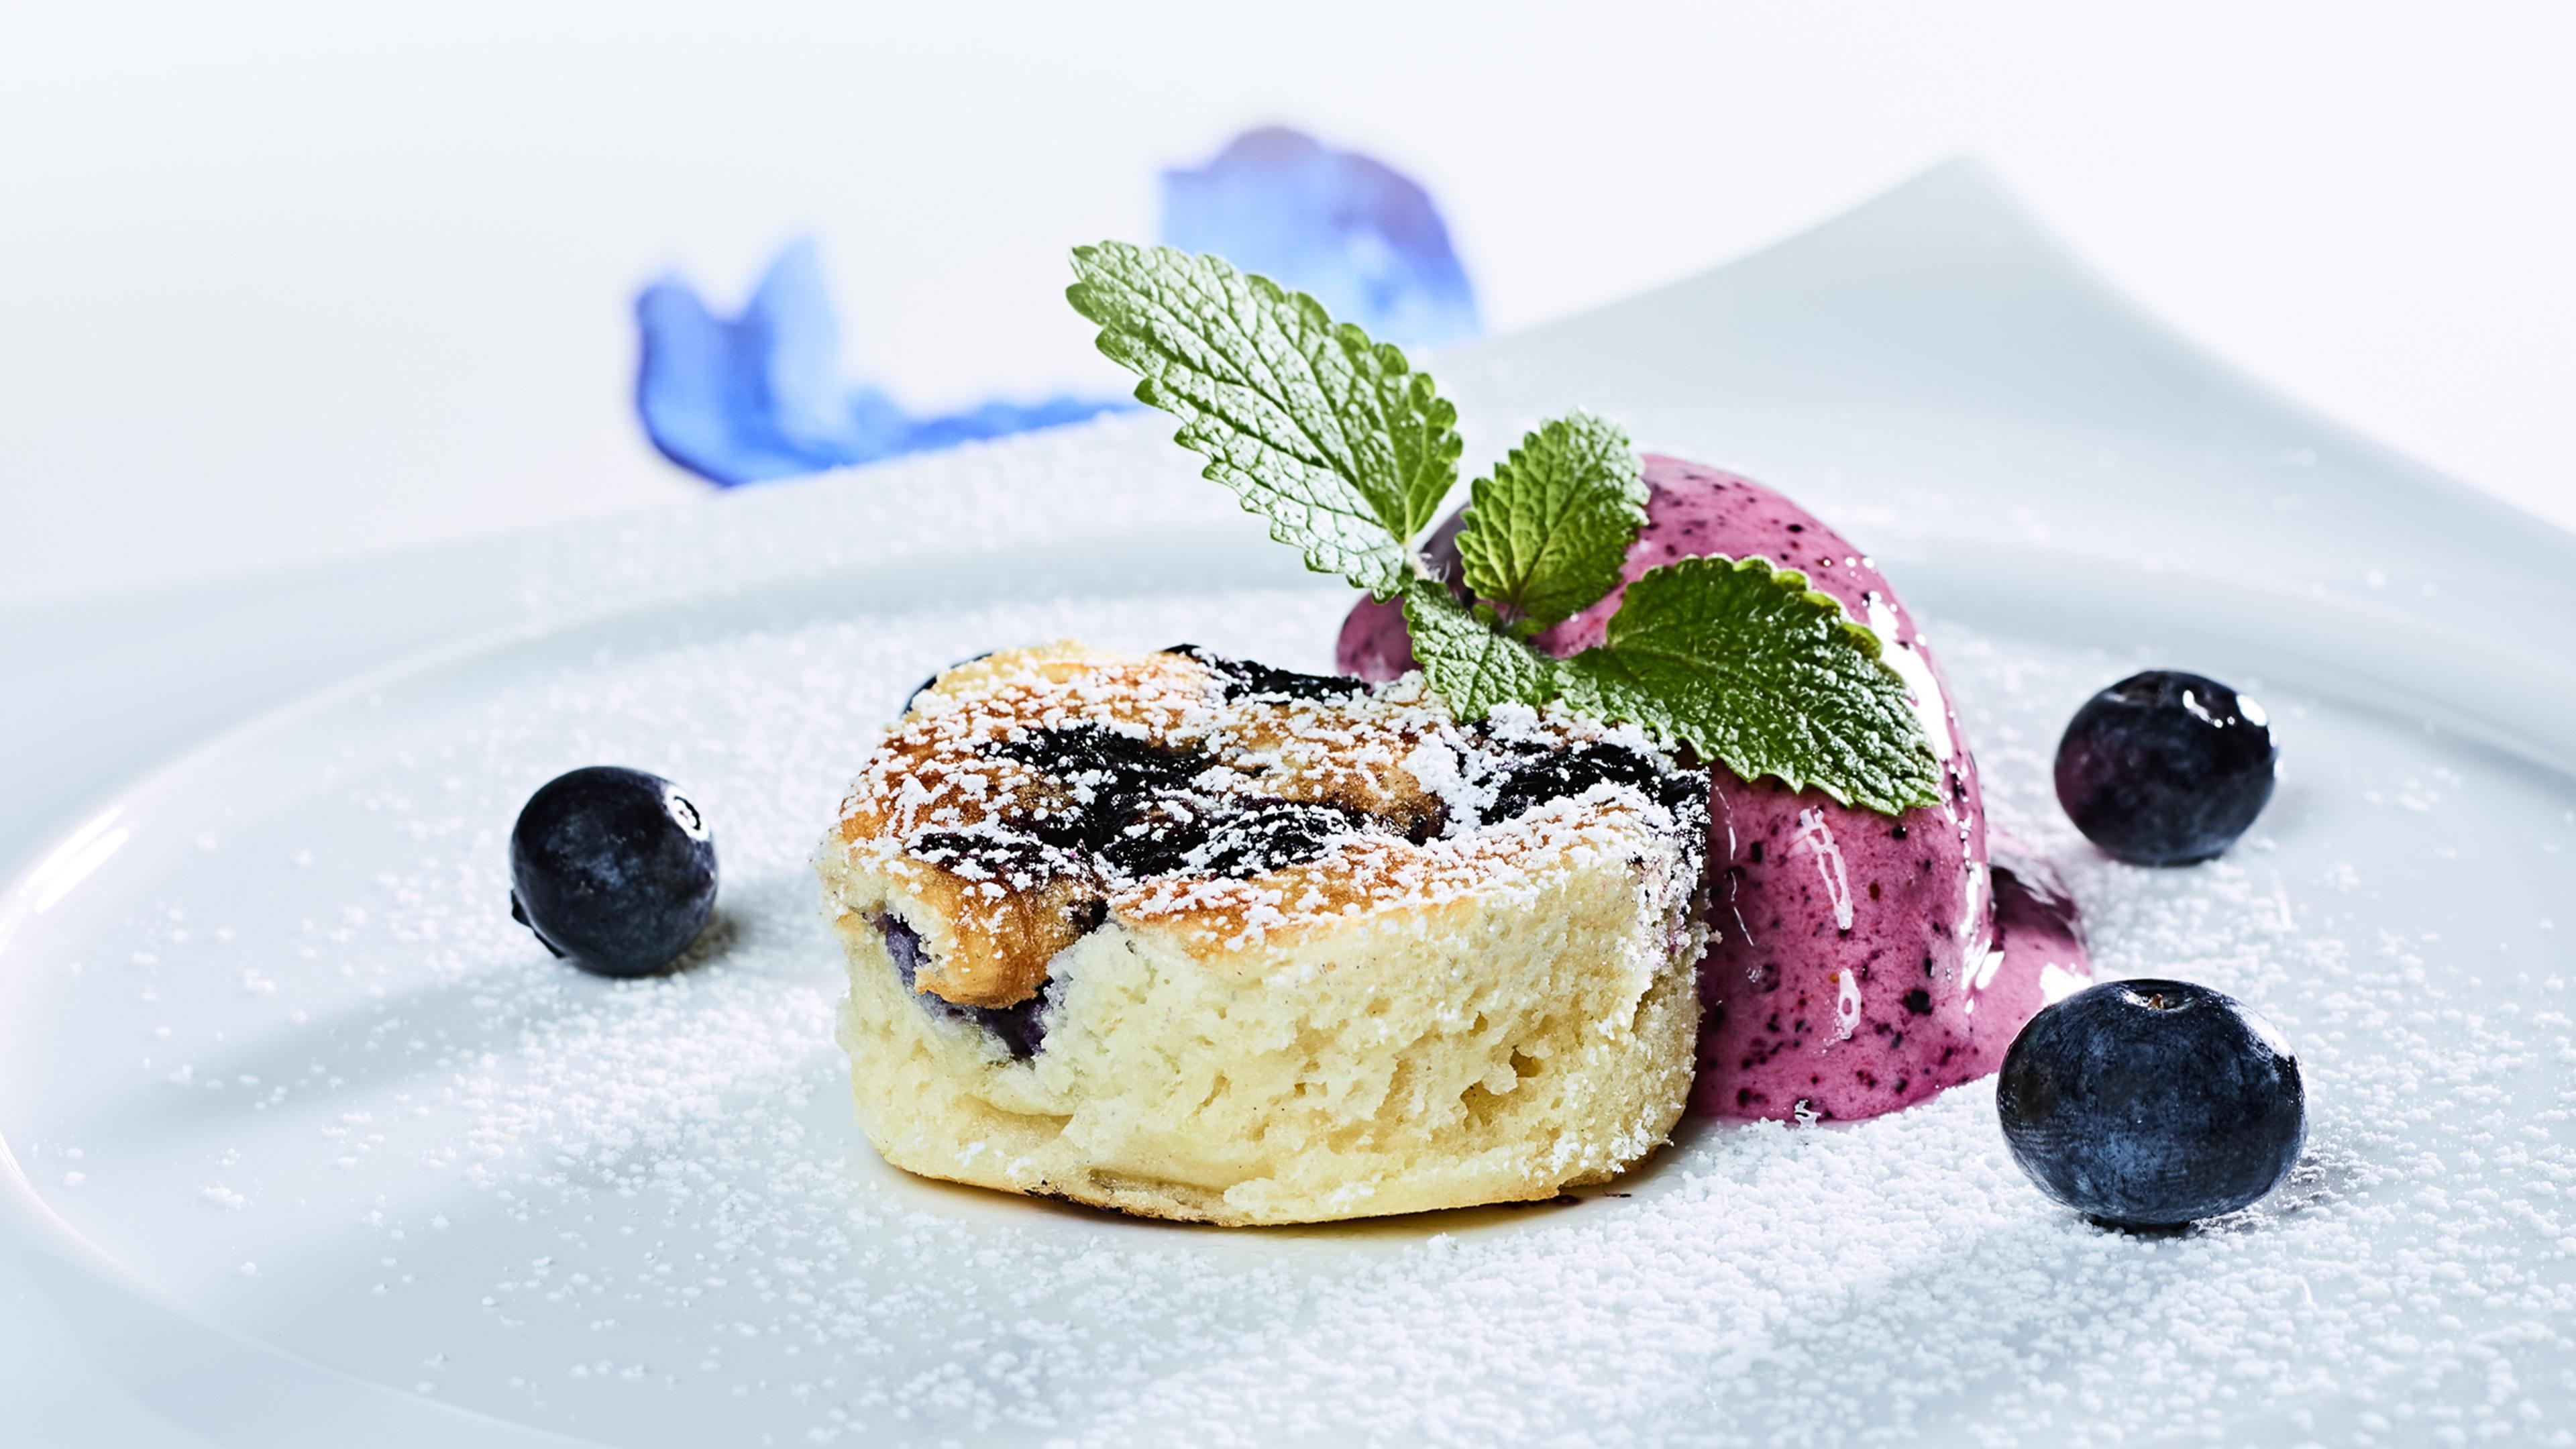 Buttermilk pancakes with quick blueberry ice cream